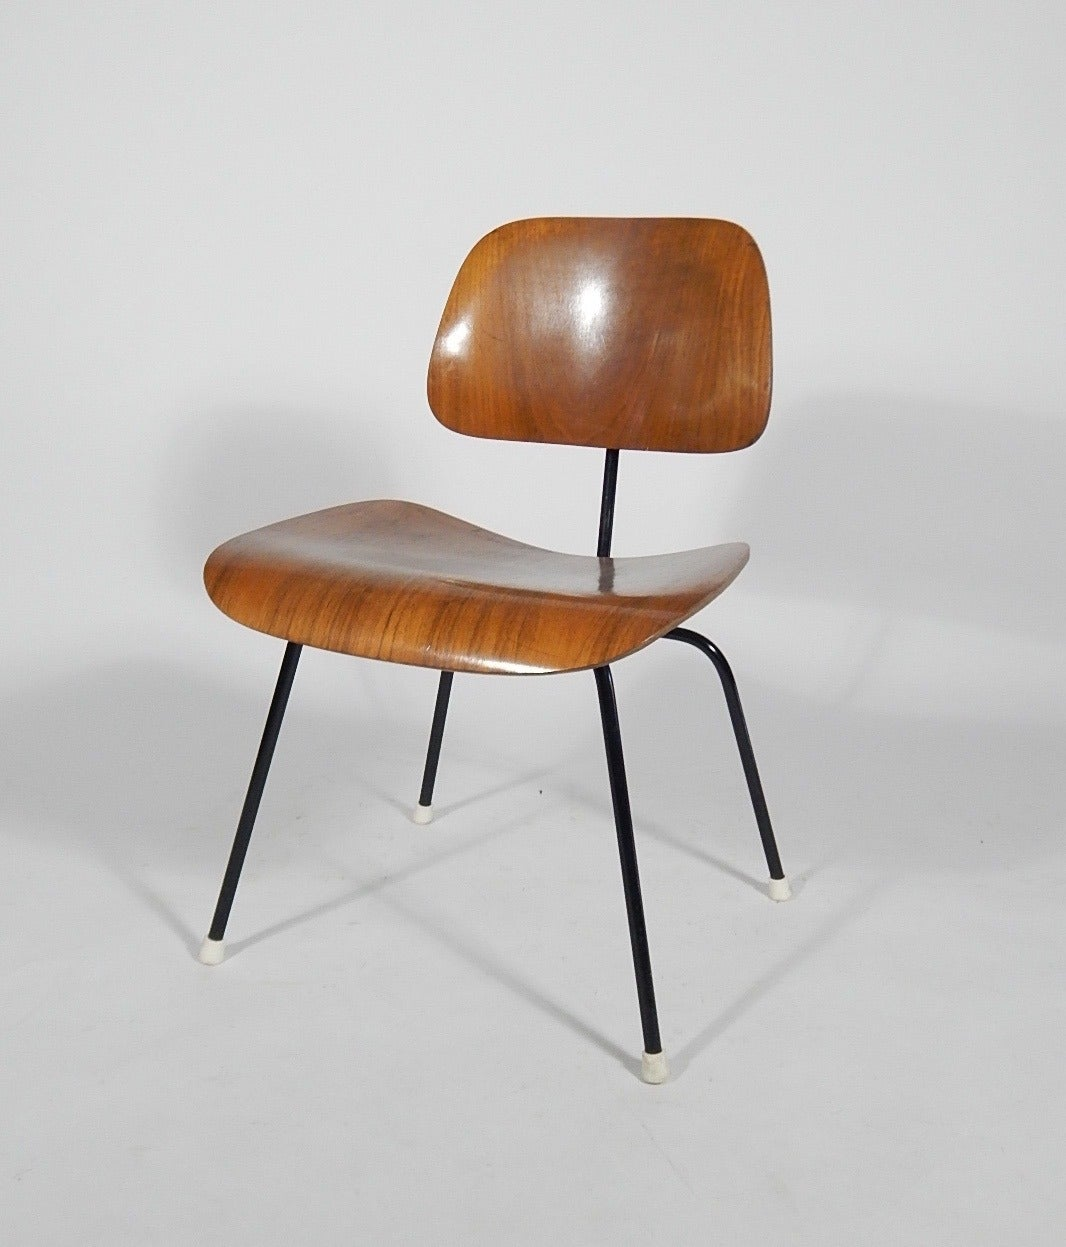 early charles and ray eames dcm chair 1950s at 1stdibs. Black Bedroom Furniture Sets. Home Design Ideas